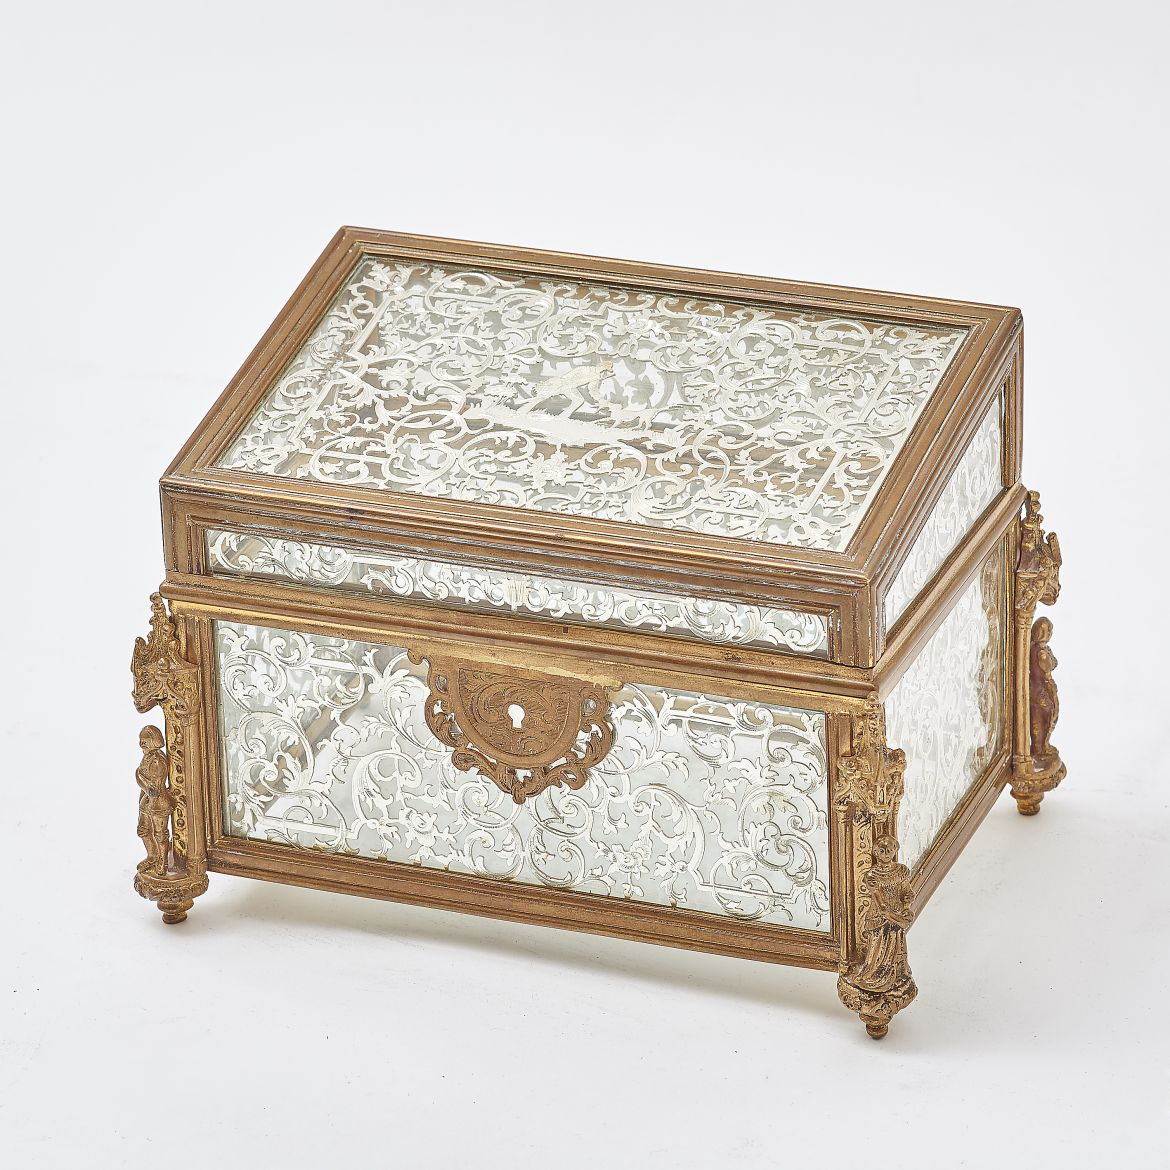 French Casket With Berainesque Panels